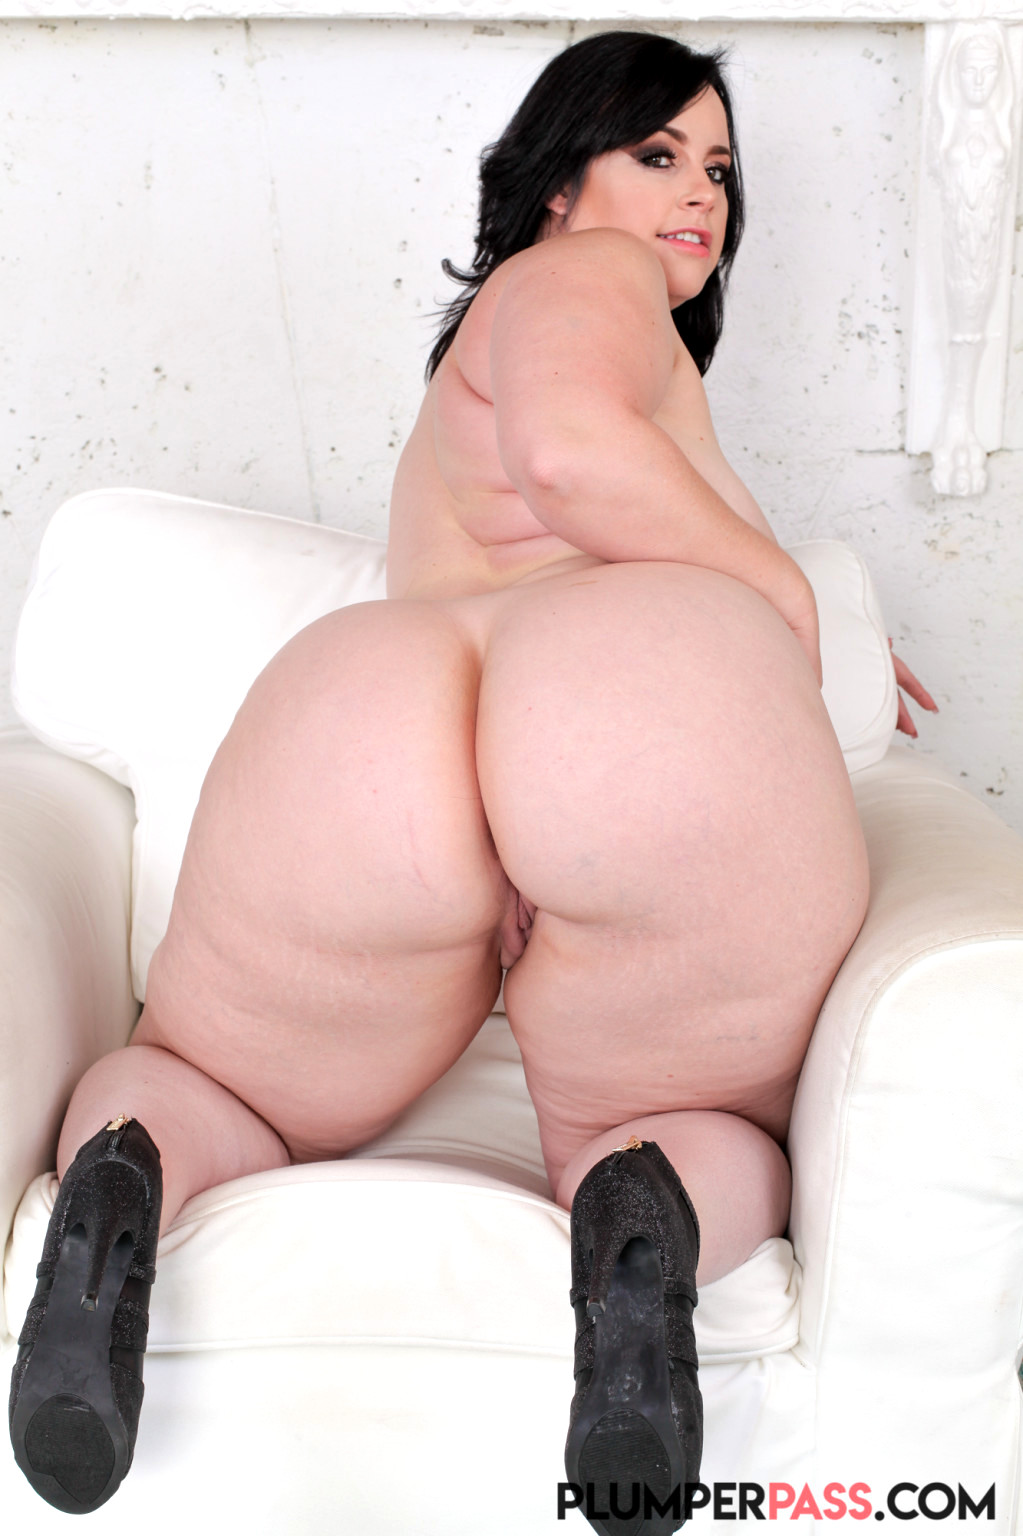 Fat bbw gf pawg i met online loves to fuck all the time2 - 2 part 5